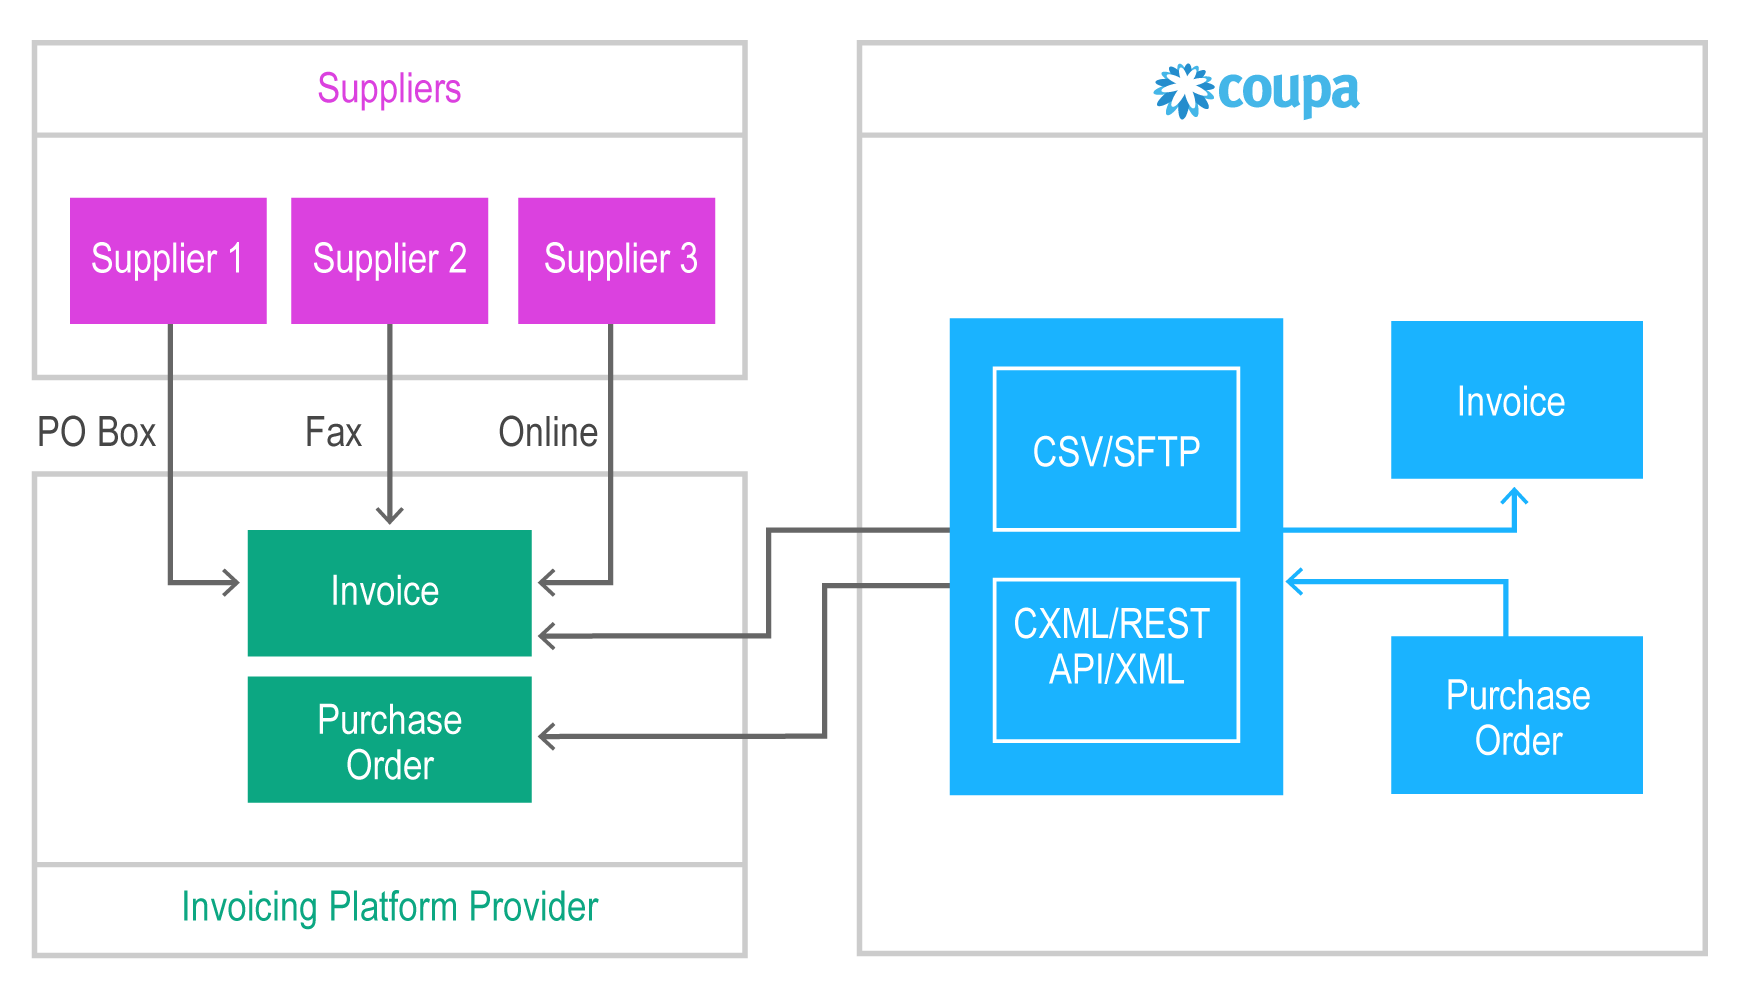 Invoicing | Coupa Invoicing Platform Integration | Coupa Software